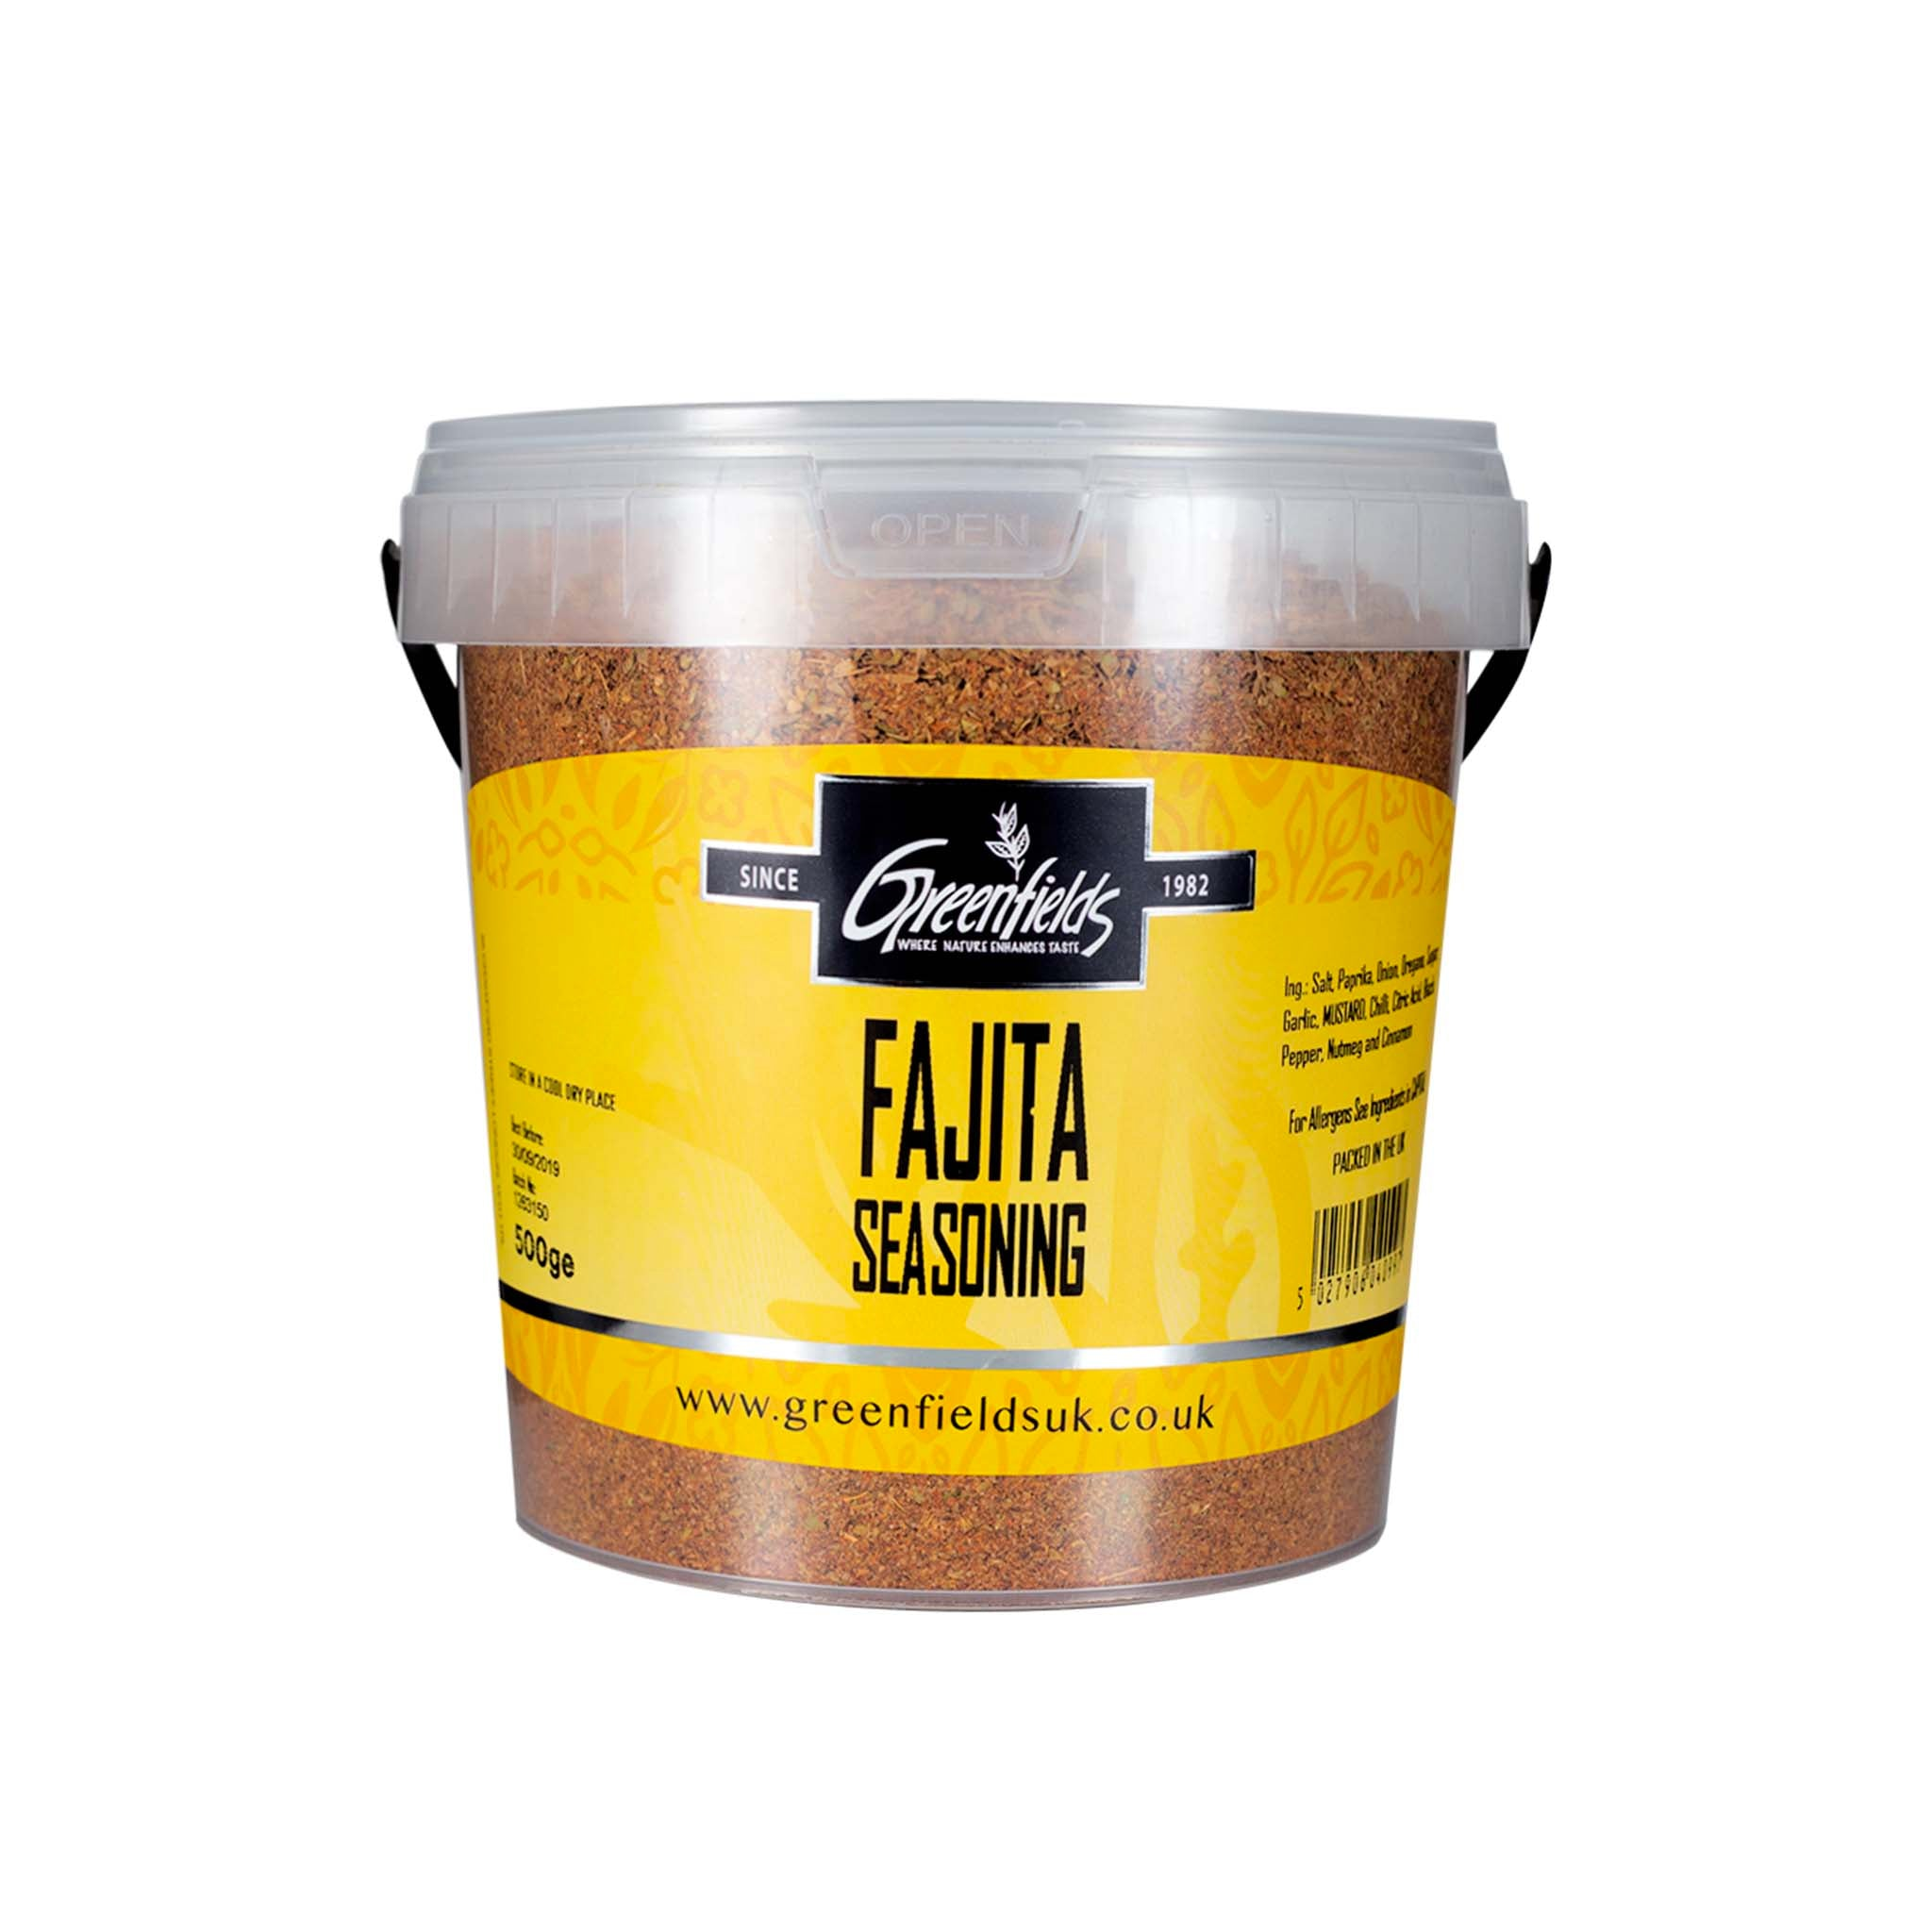 Greenfields Fajita Seasoning Catering Size Ingredients Herbs & Spices Catering Size Herbs & Spices